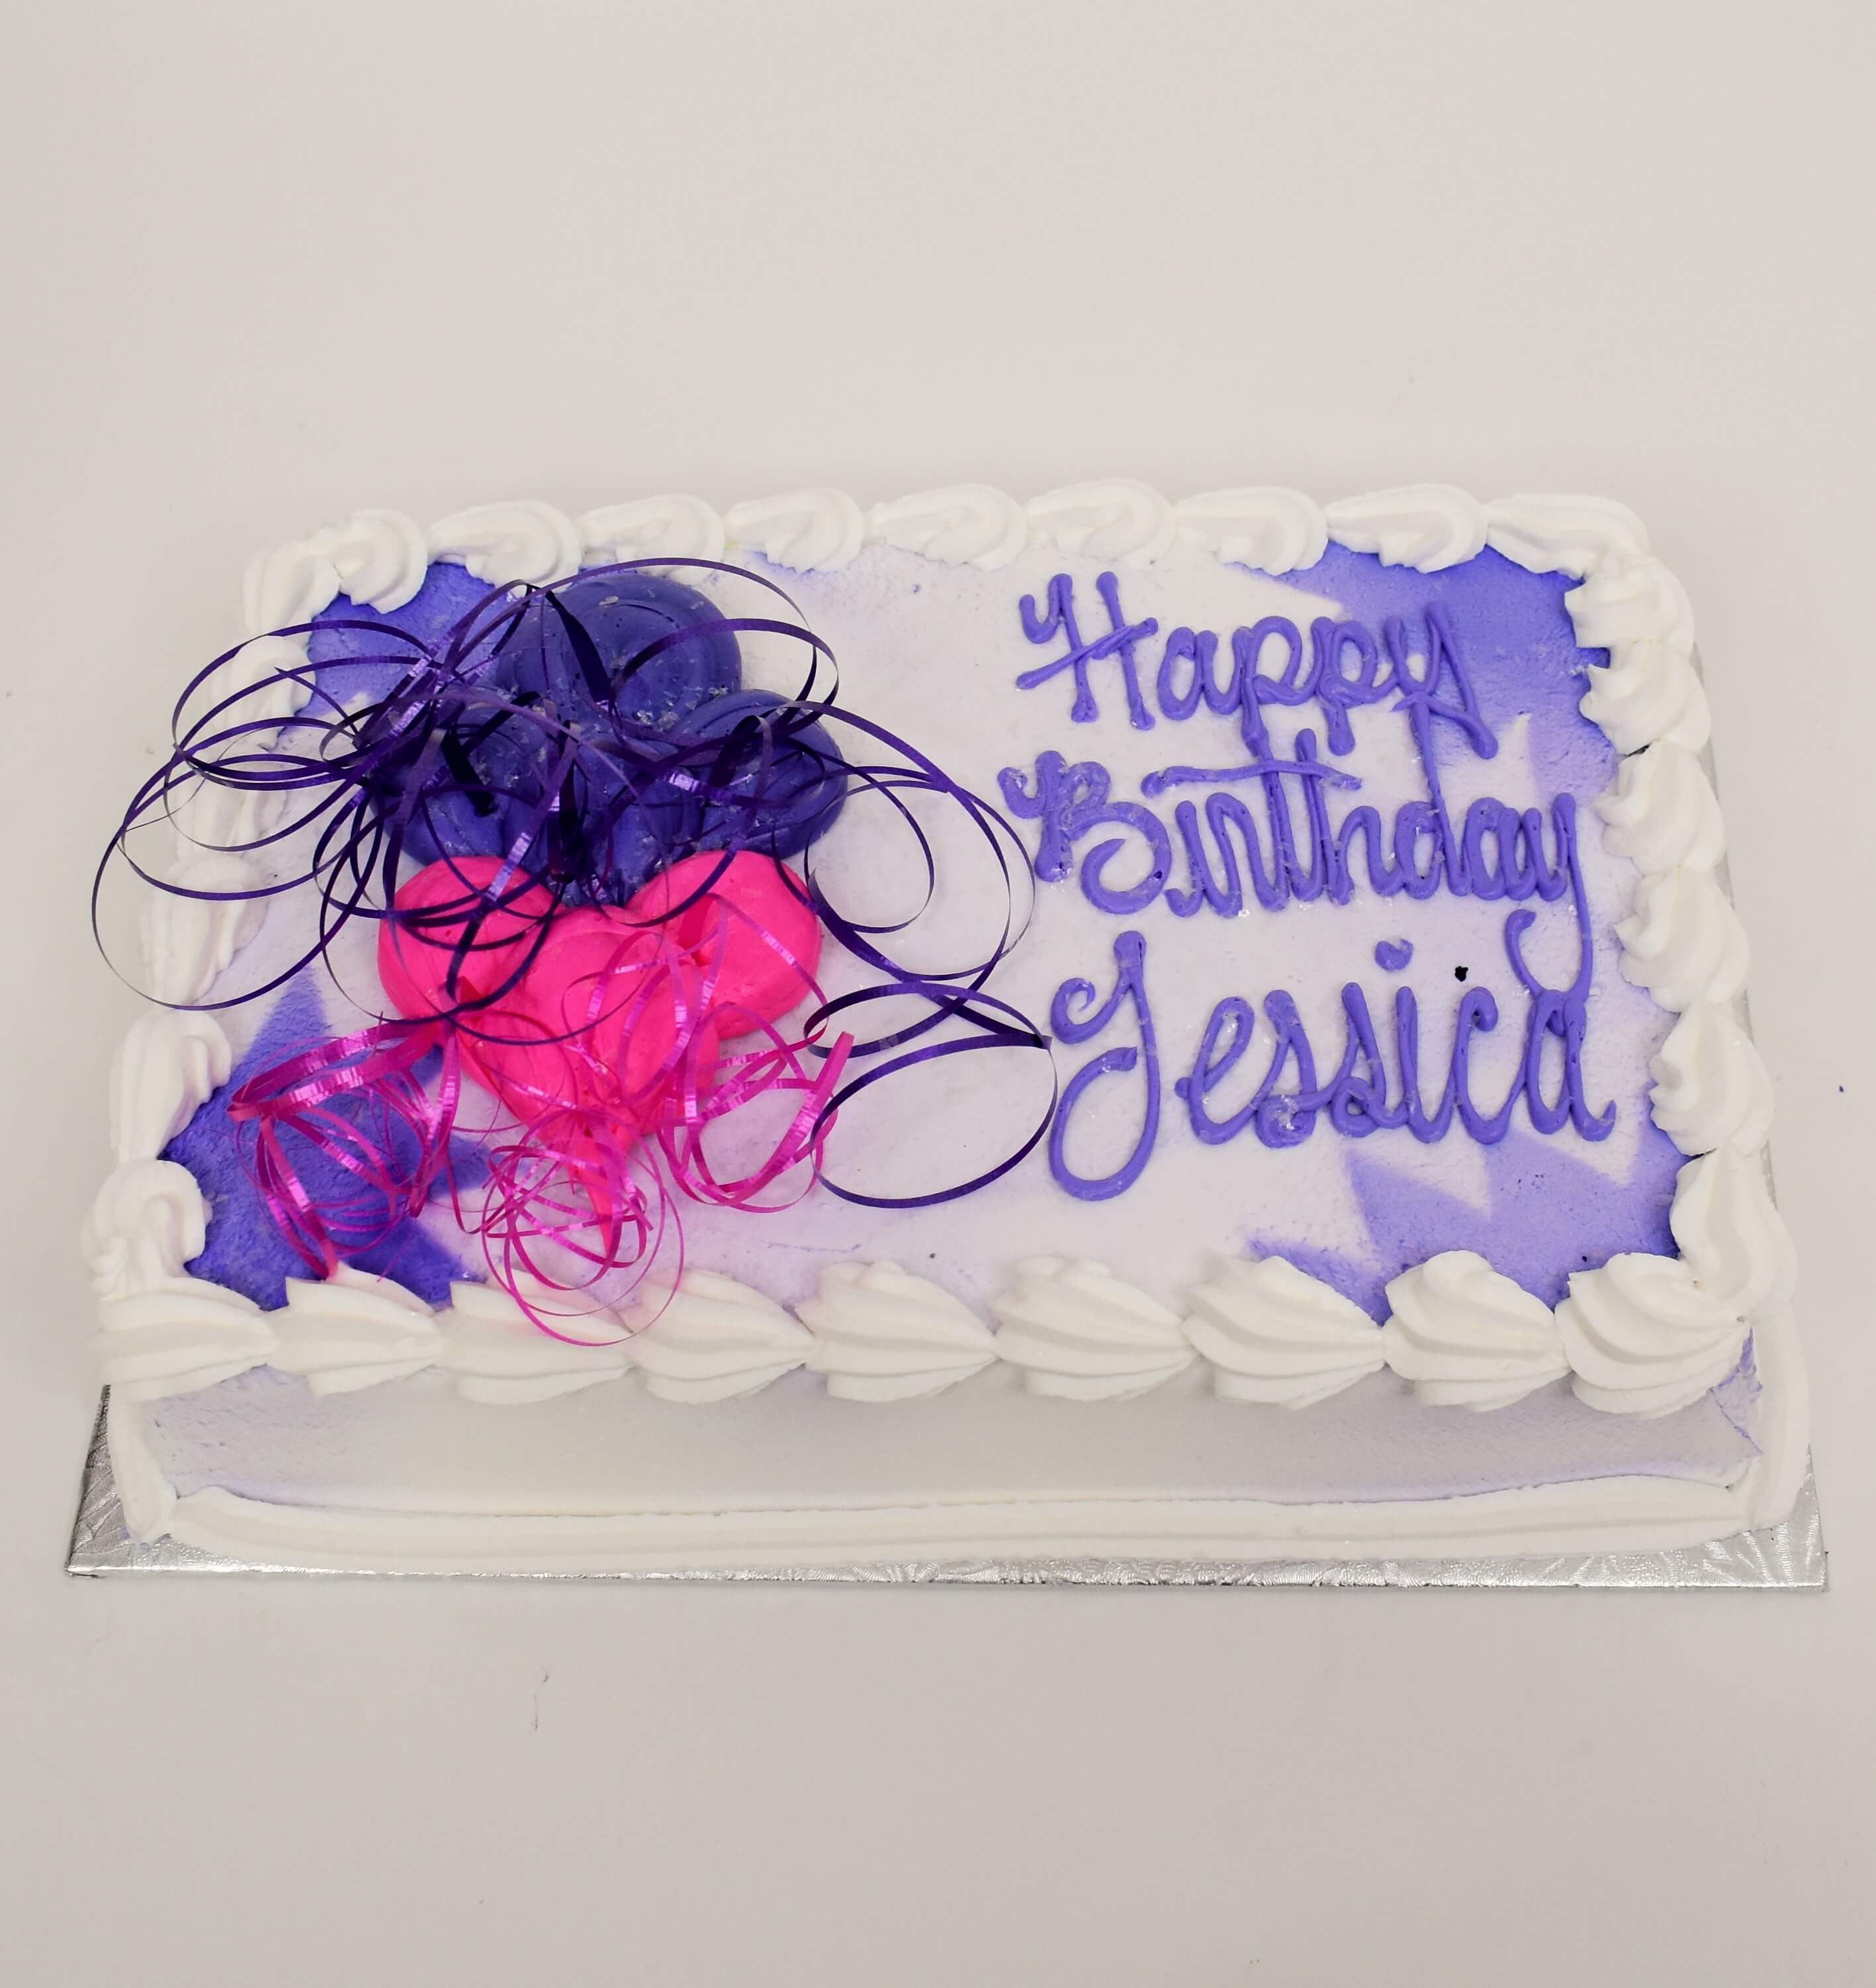 McArthur's Bakery Custom Cake With Vibrant Purple And Pink Balloons